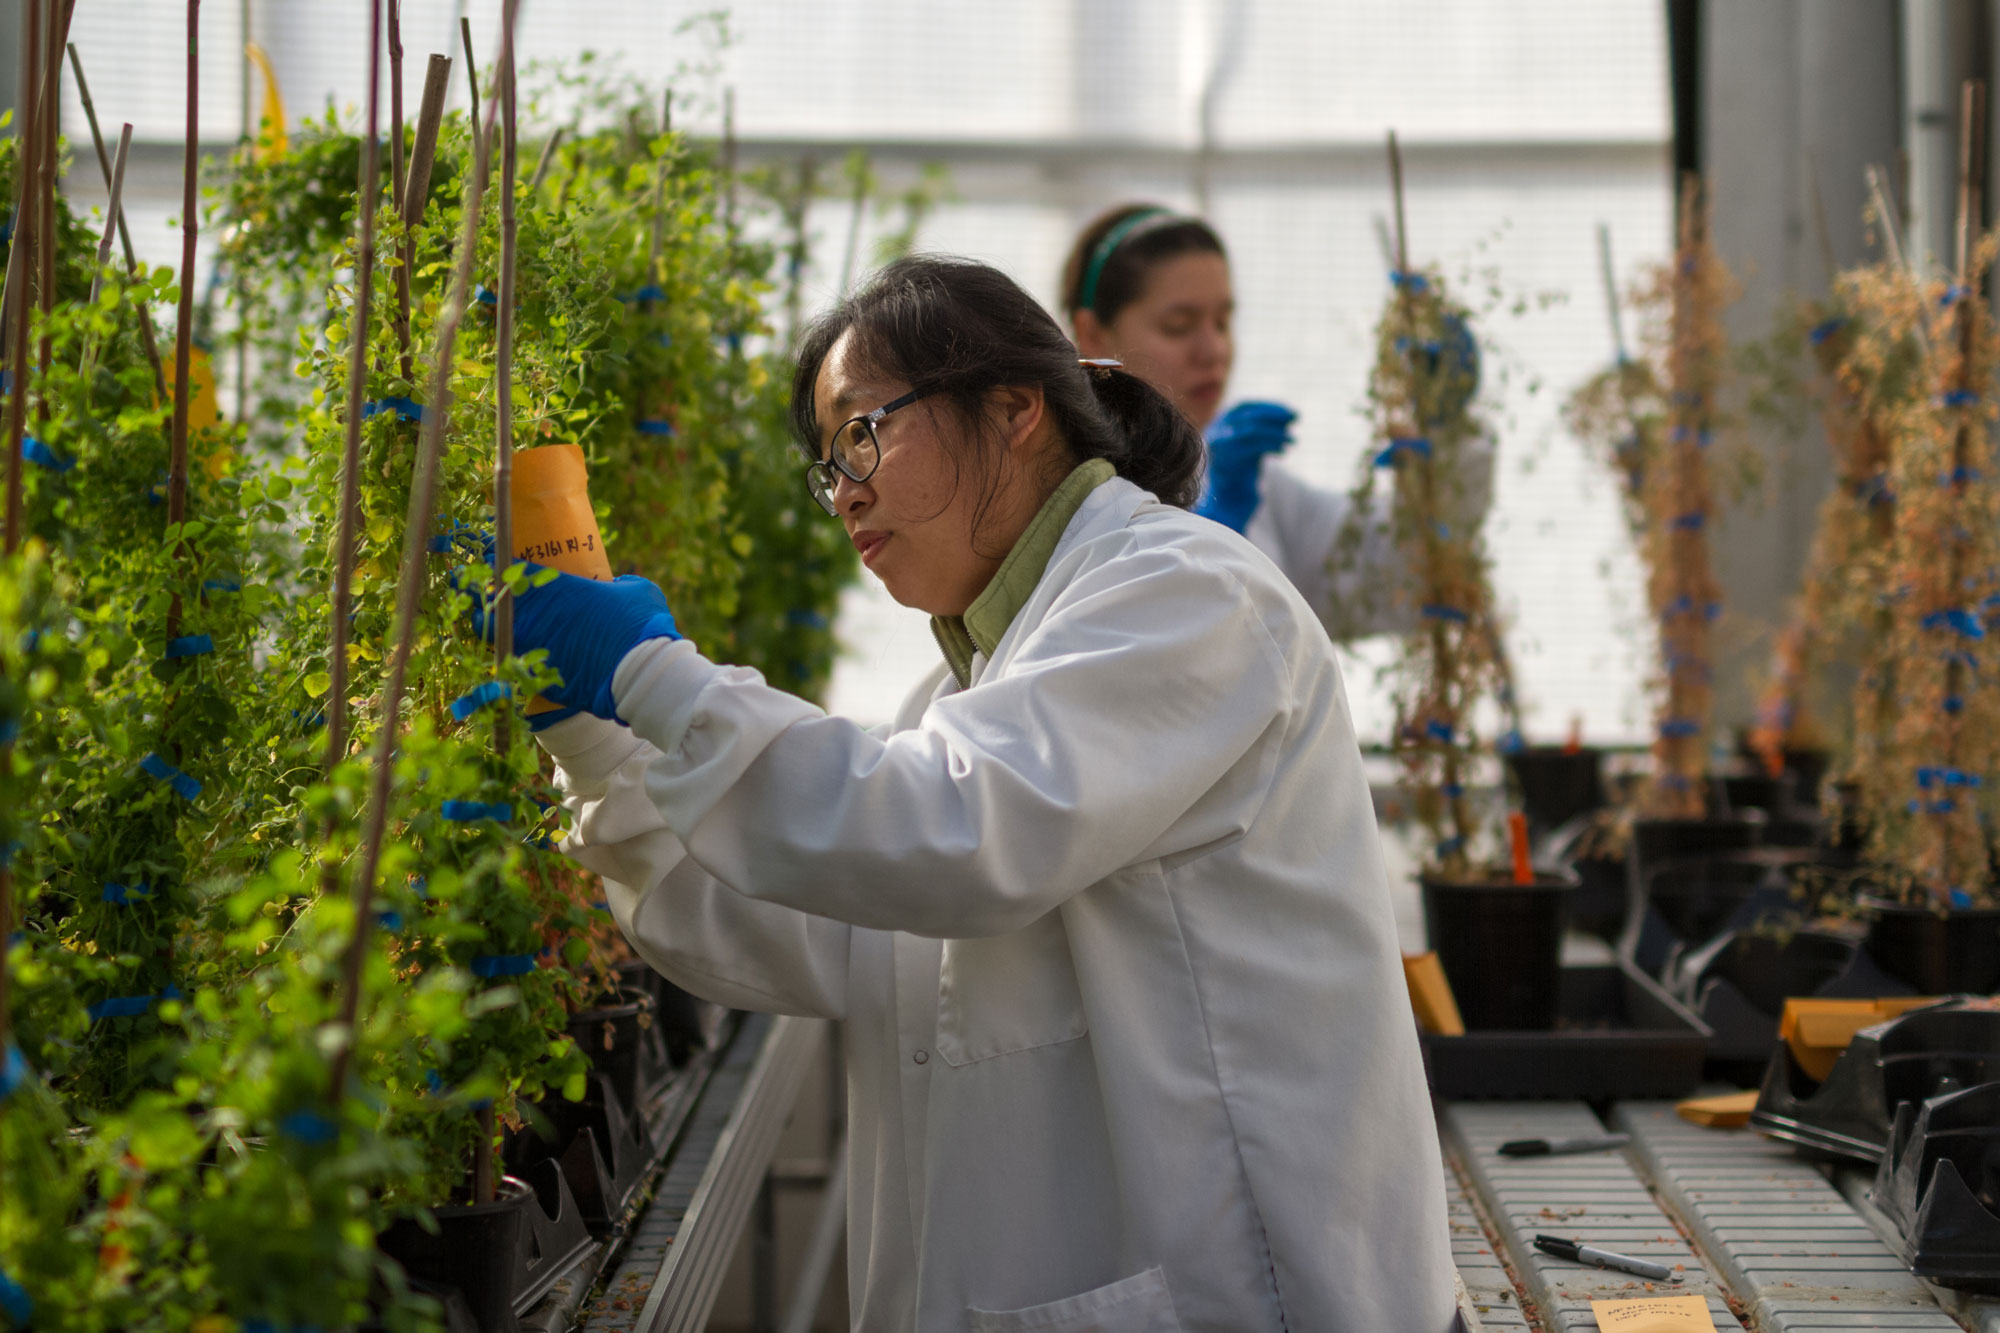 Plant Biologists work with plants in a greenhouse.